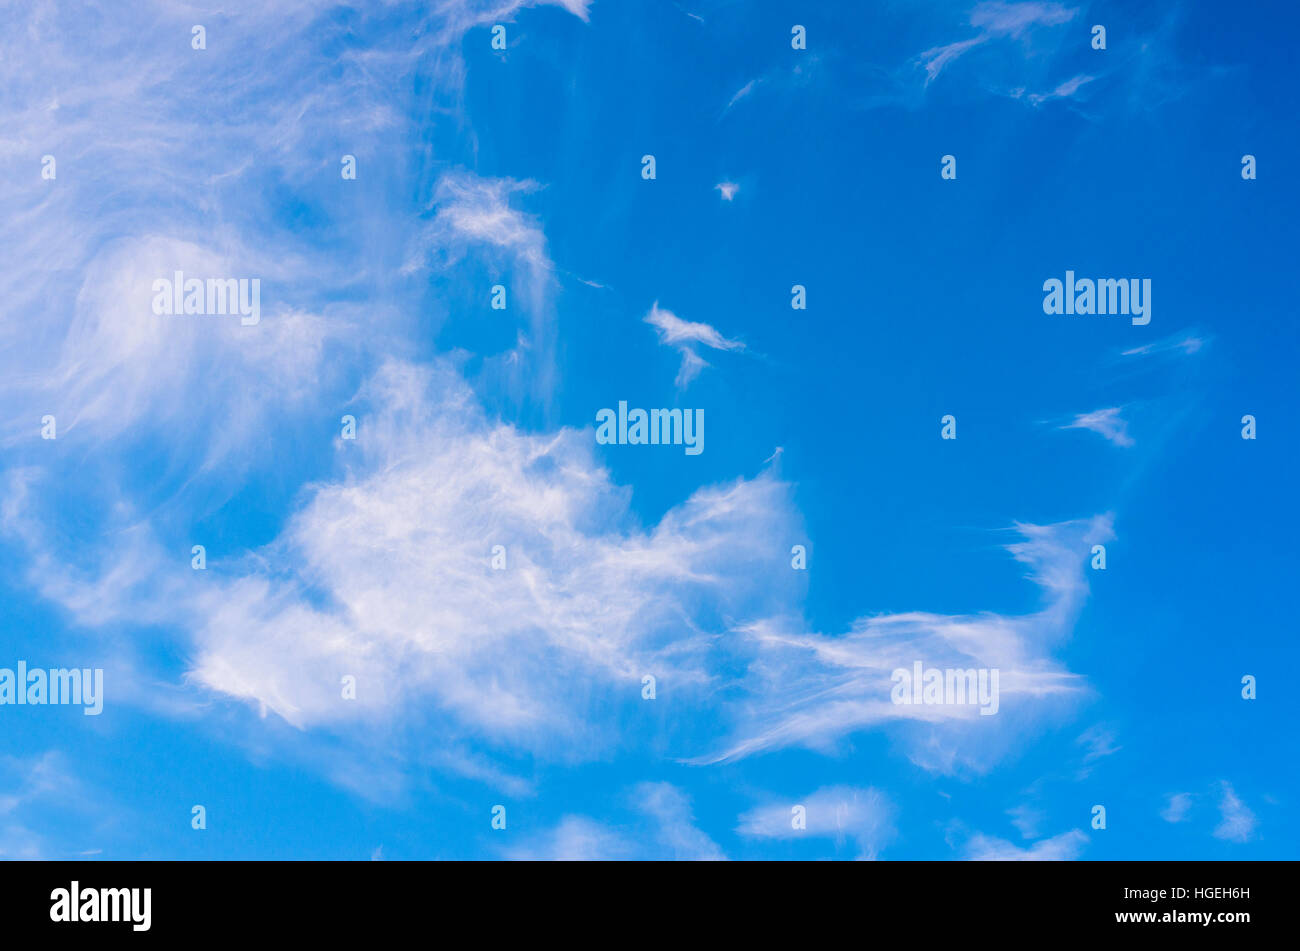 Cirrus and alto-stratus clouds in a blue sky Stock Photo